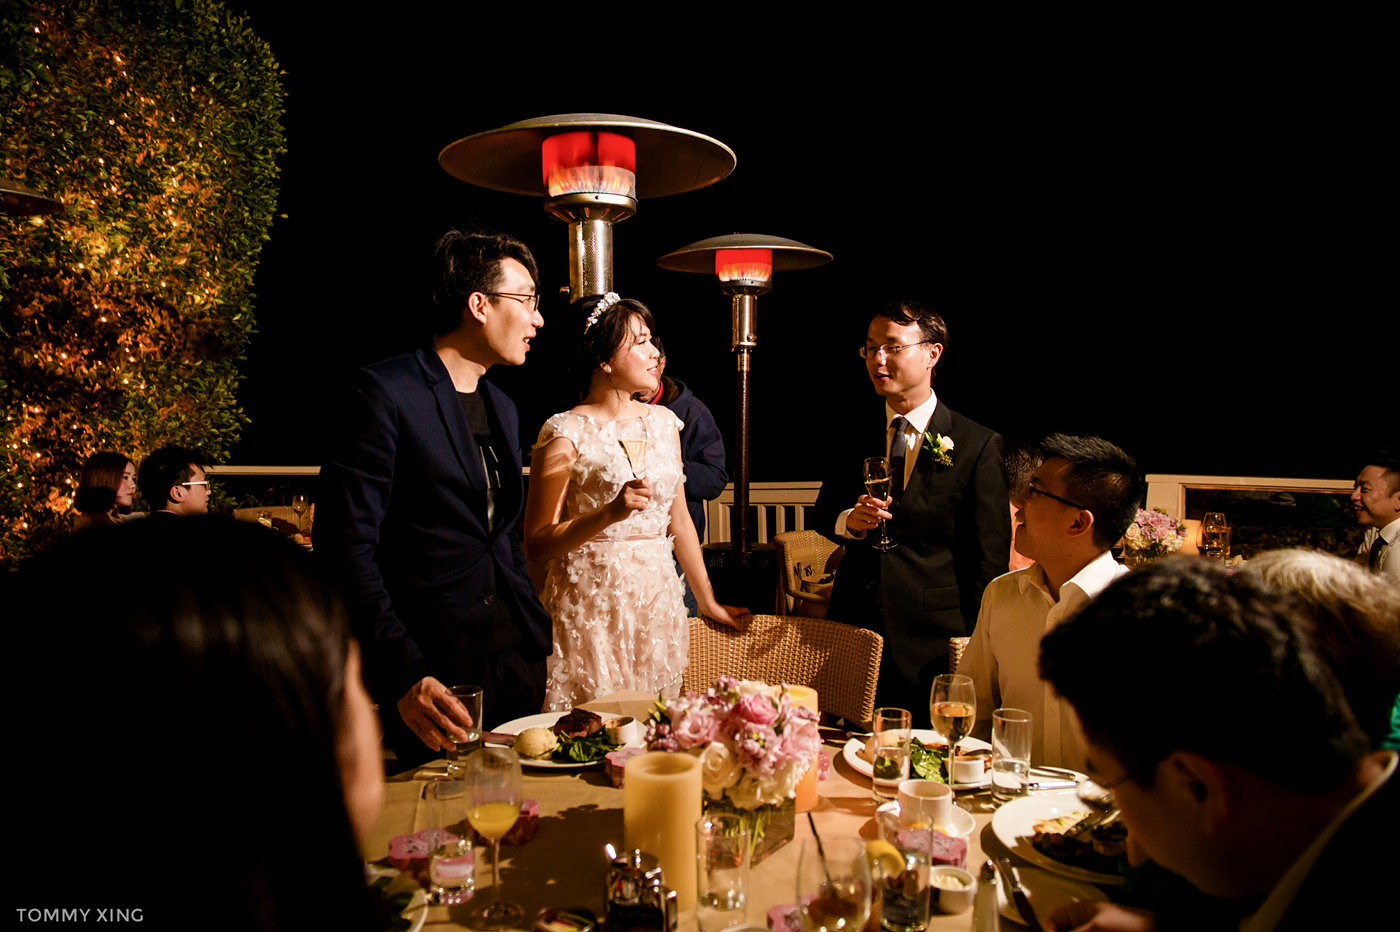 Qinglu Meng & Daozheng Chen Wedding Slideshow-218-E.JPG